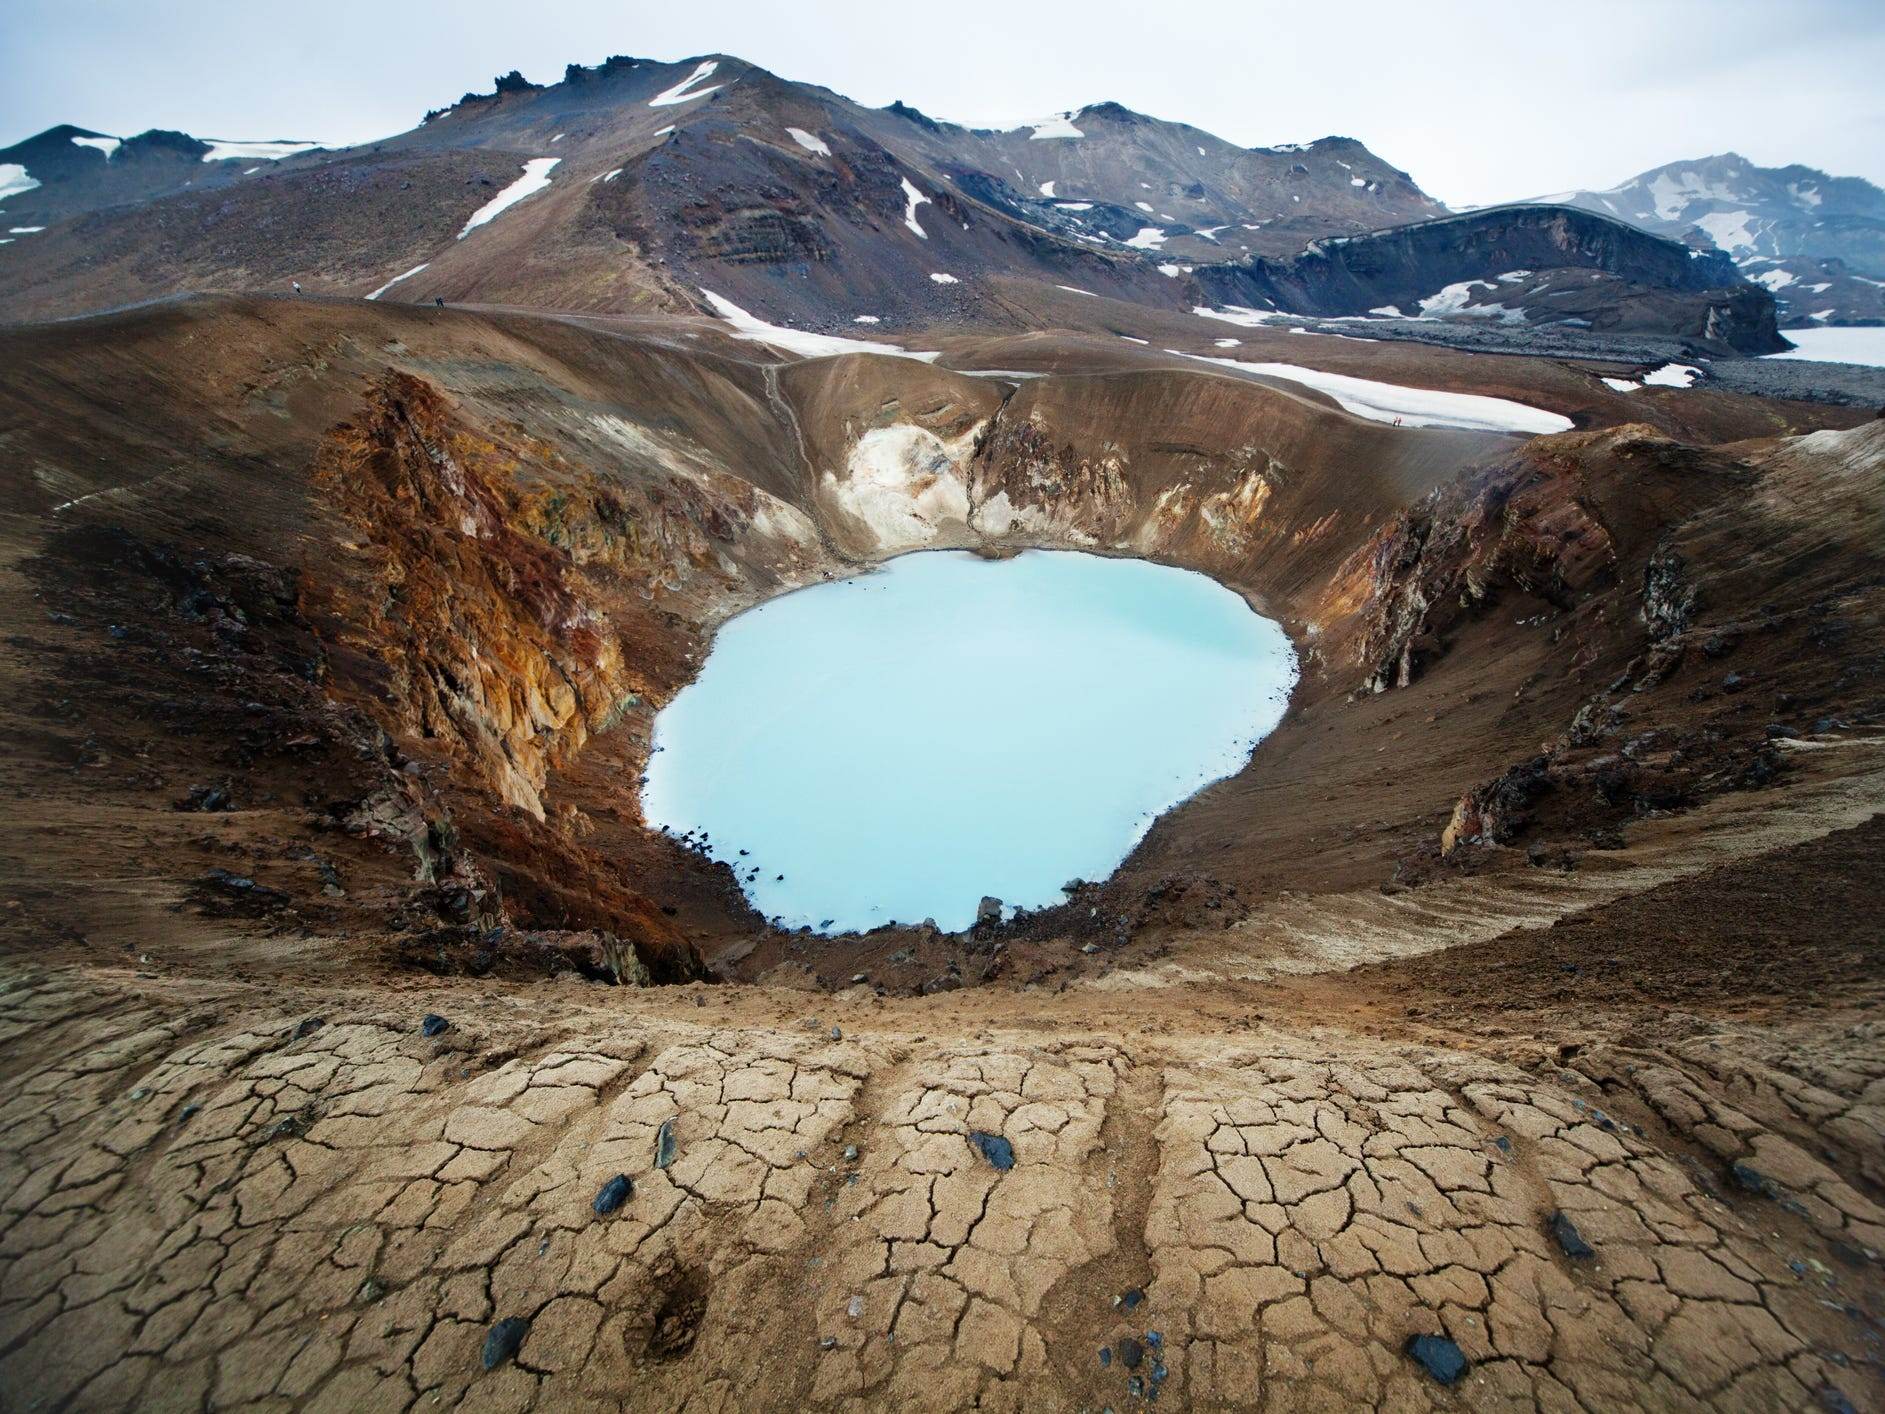 The Askja caldera in Iceland.